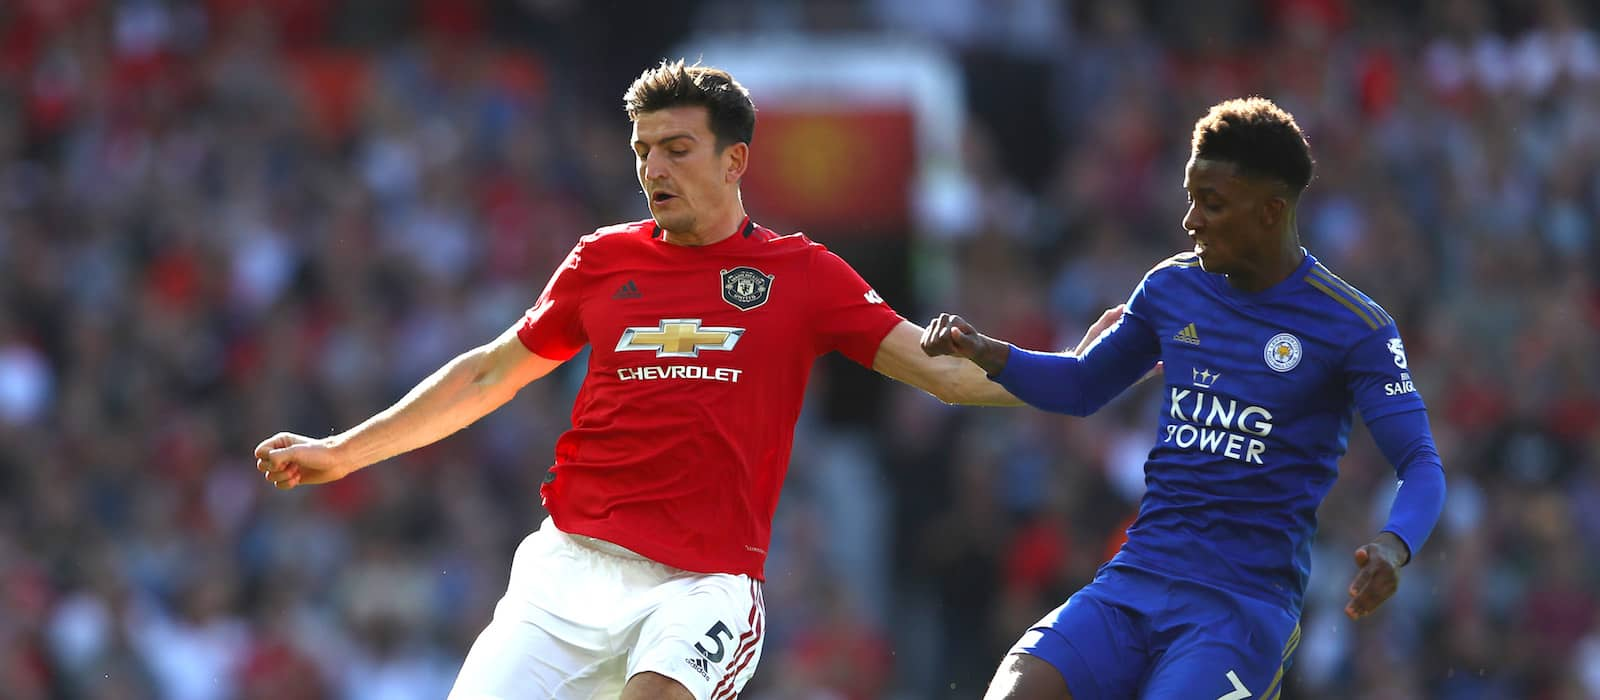 Harry Maguire believes Victor Lindelof partnership can improve